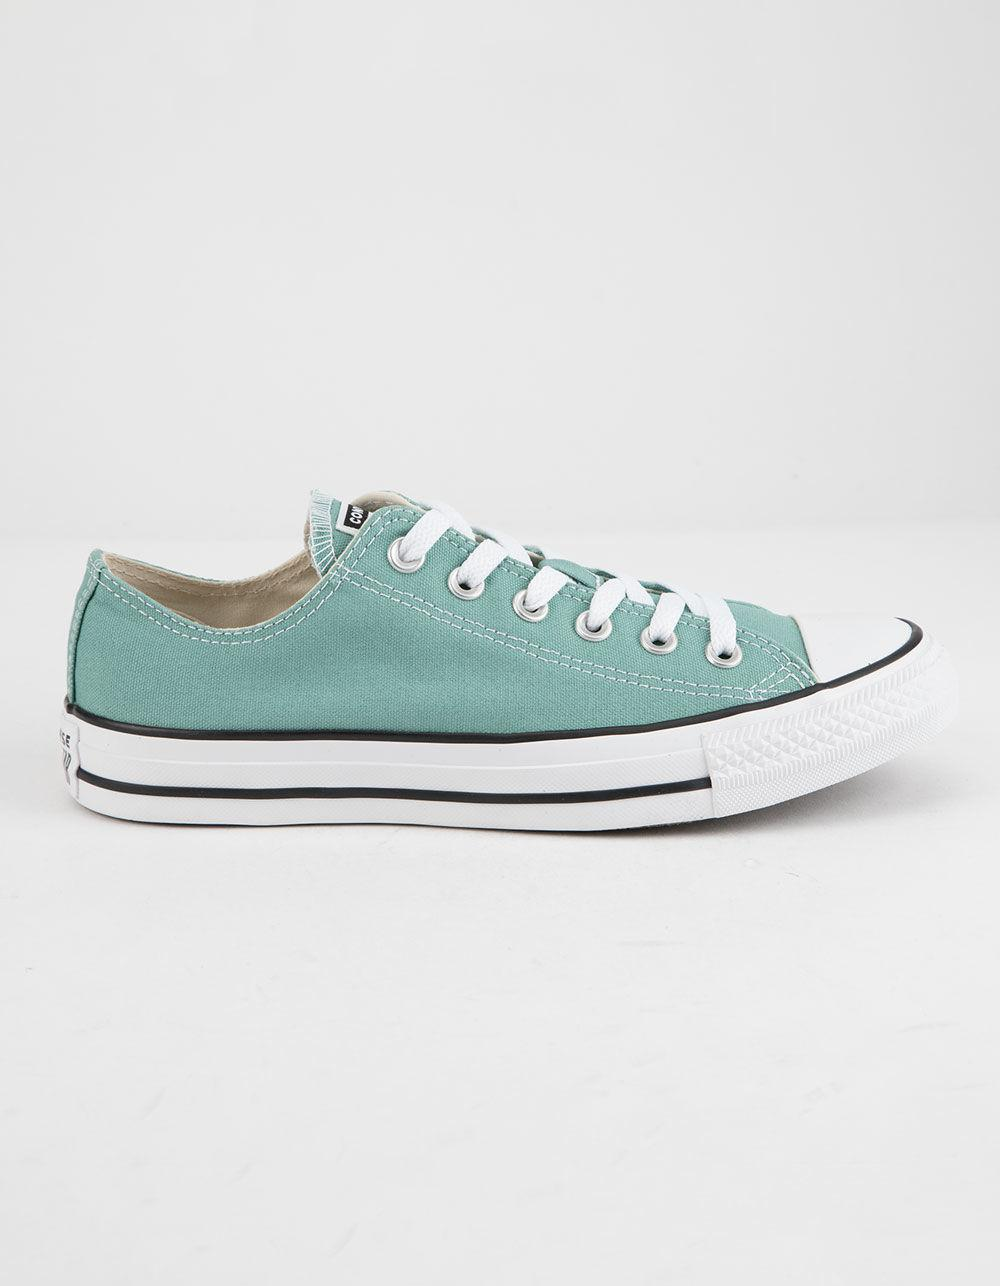 Converse. Blue Chuck Taylor All Star Mineral Teal Low Top Womens Shoes 5e37c351c